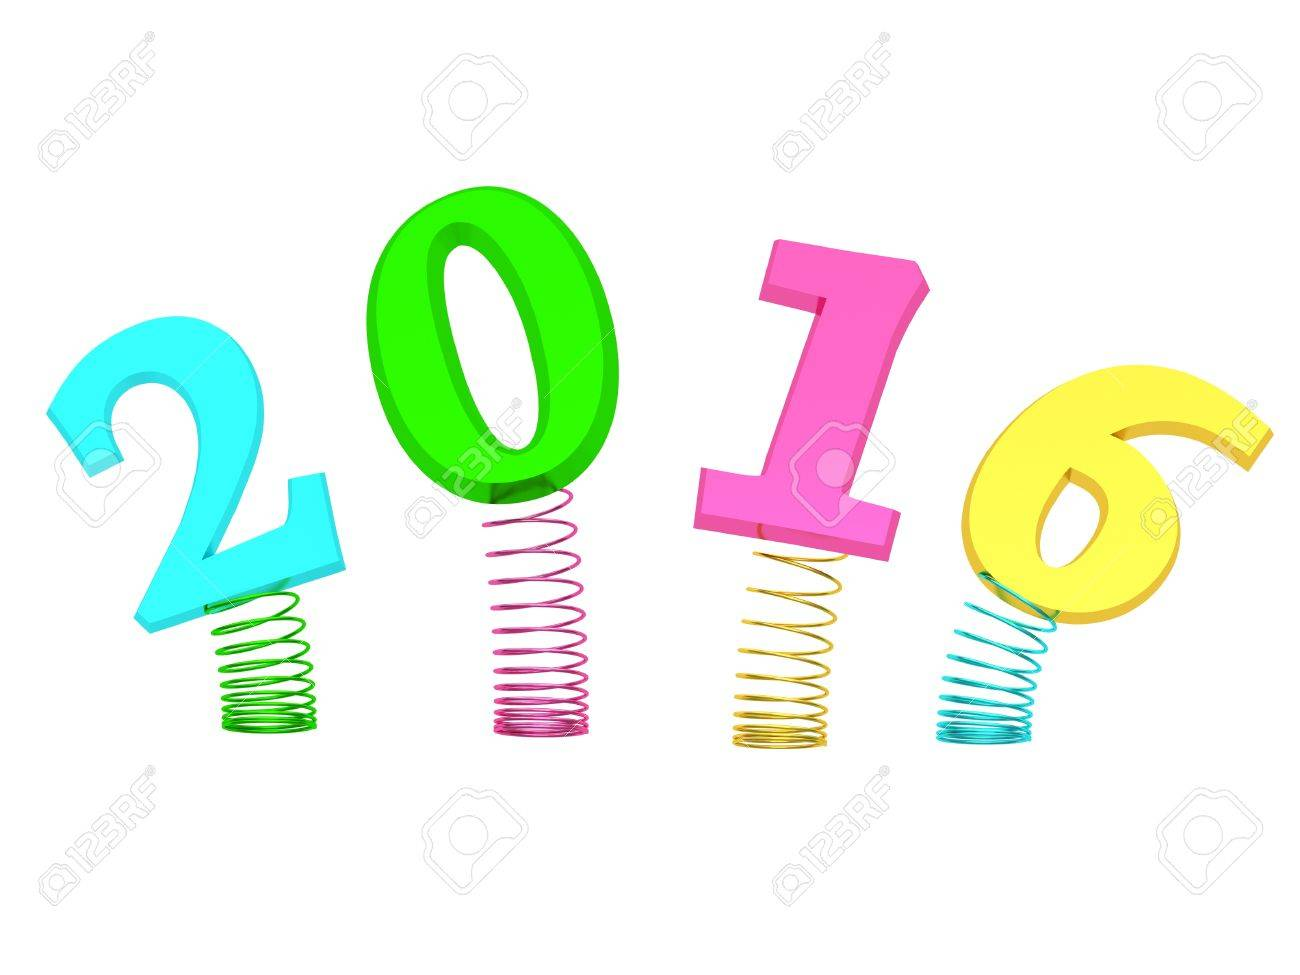 Frohes Neues Jahr 2016! (Happy New Year 2016!) Stock Photo - Image ...